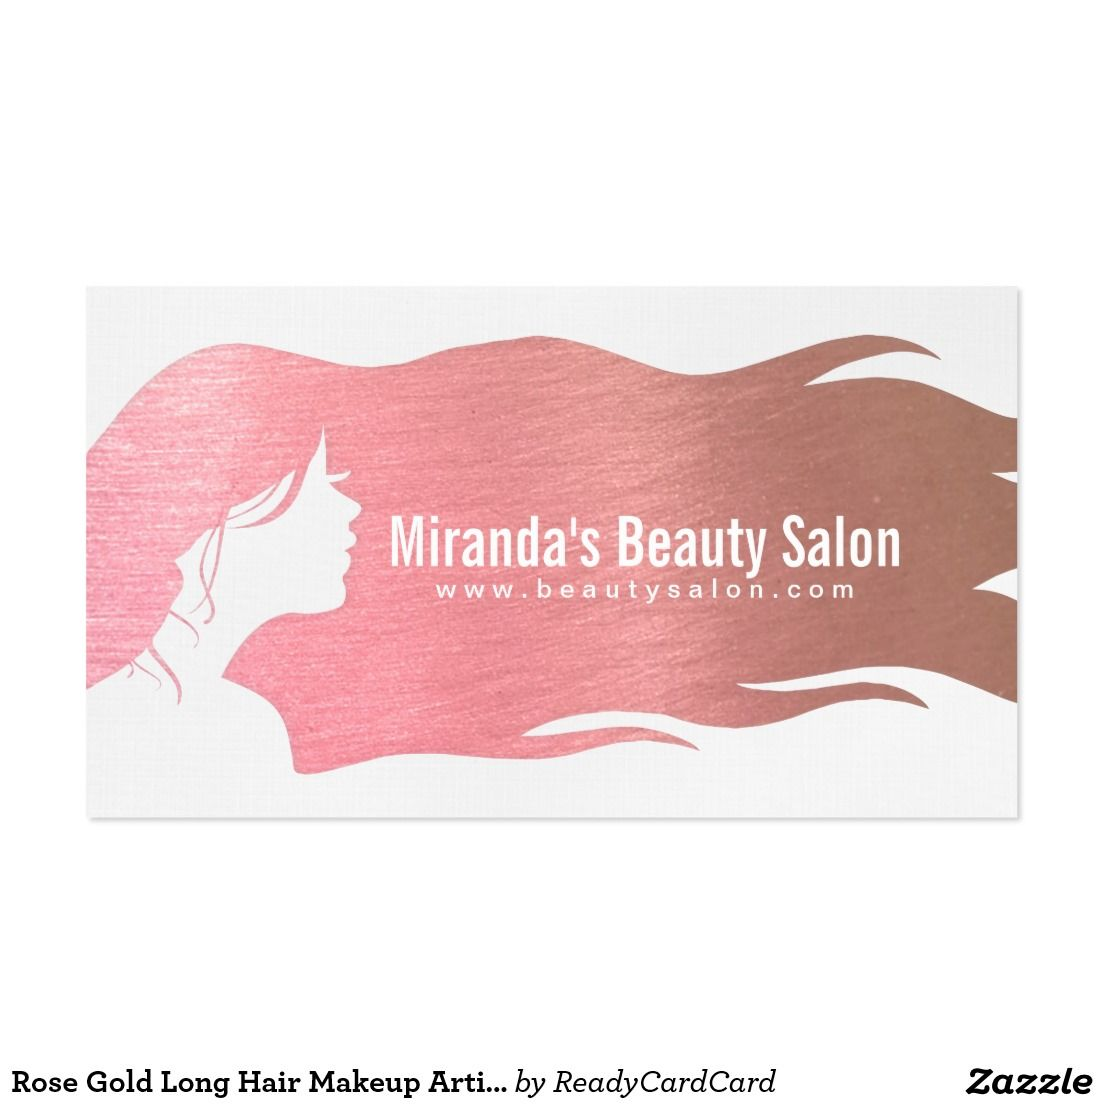 Excellent sample hair stylist business cards images business card business cards hair and makeup image collections card design and colourmoves Choice Image